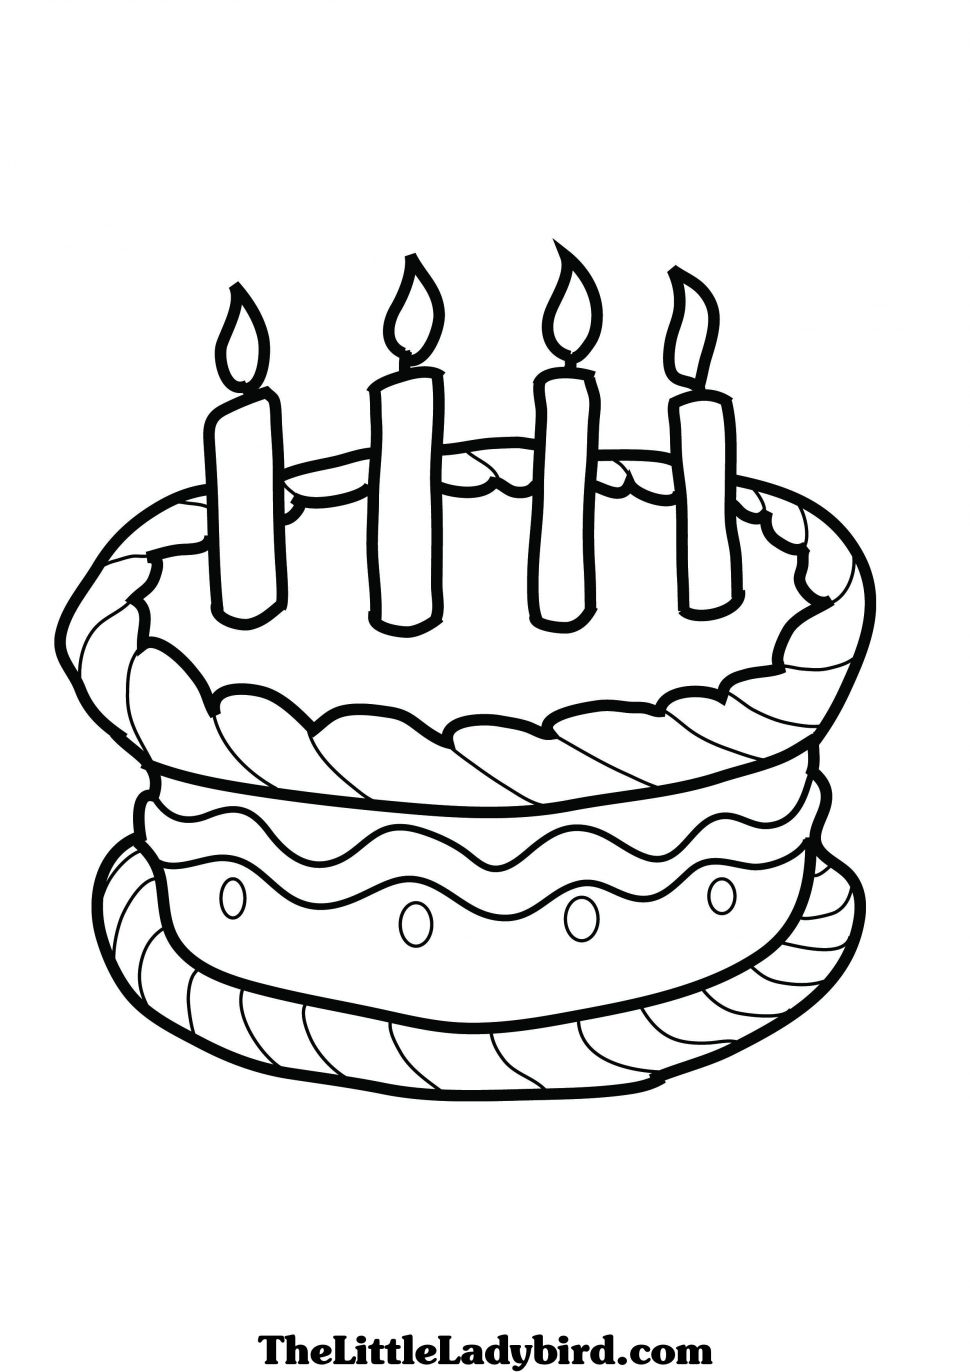 coloring pages for kids birthday cake ; birthday-cake-coloring-pages-awesome-design-ideas-sheet-for-kid-970x1372